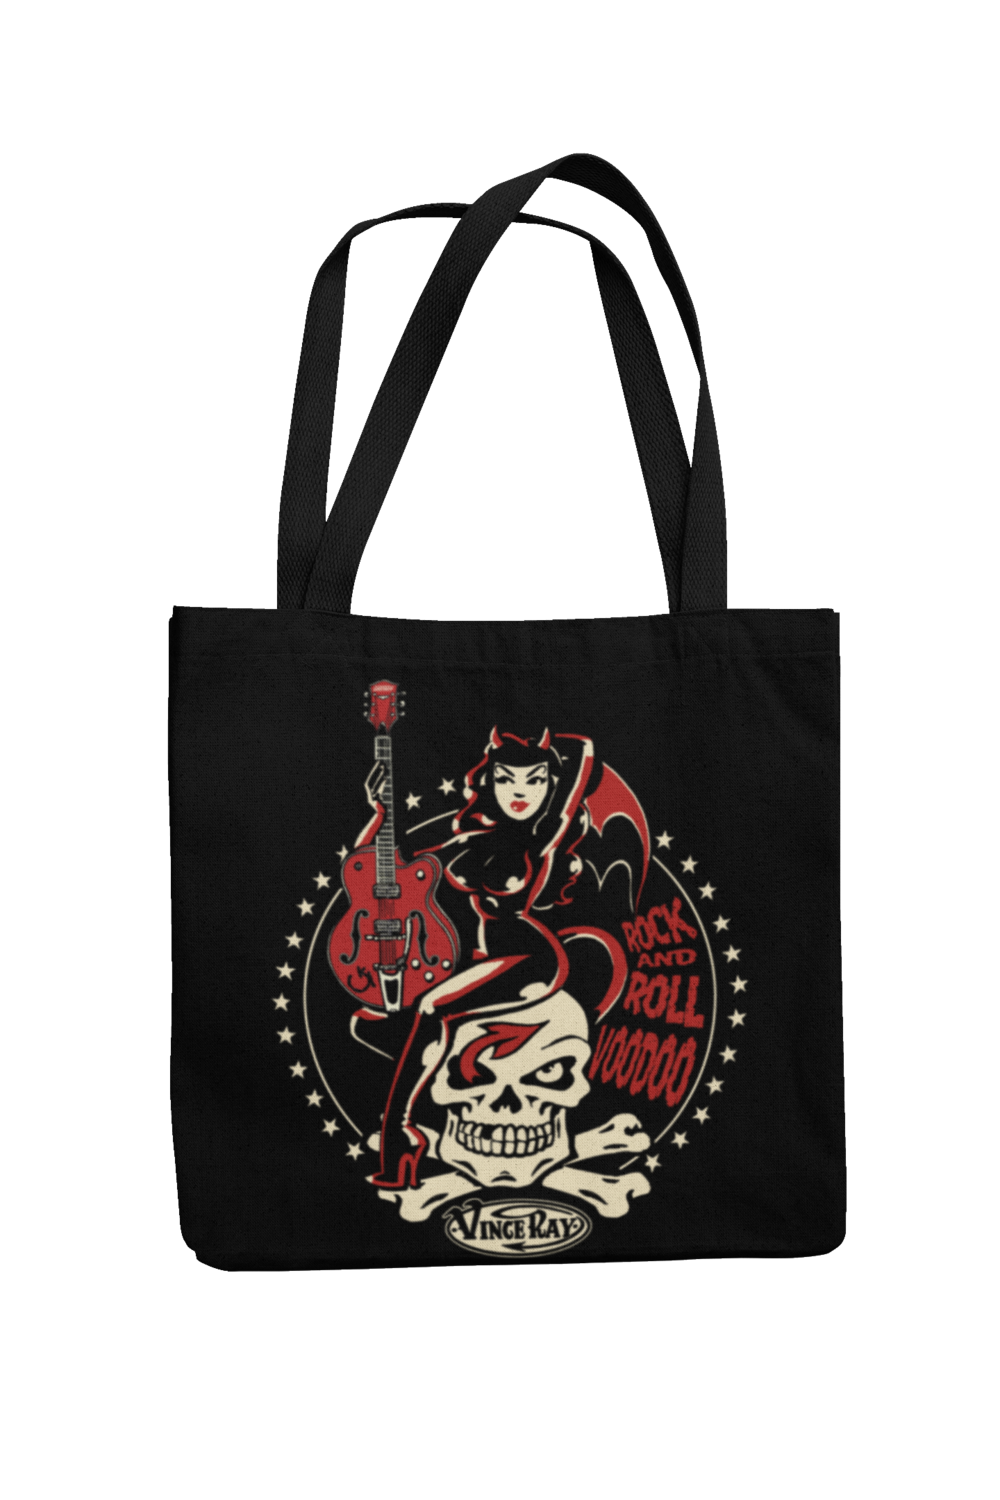 Cotton Bag Rock and roll Voodoo design by VINCE RAY